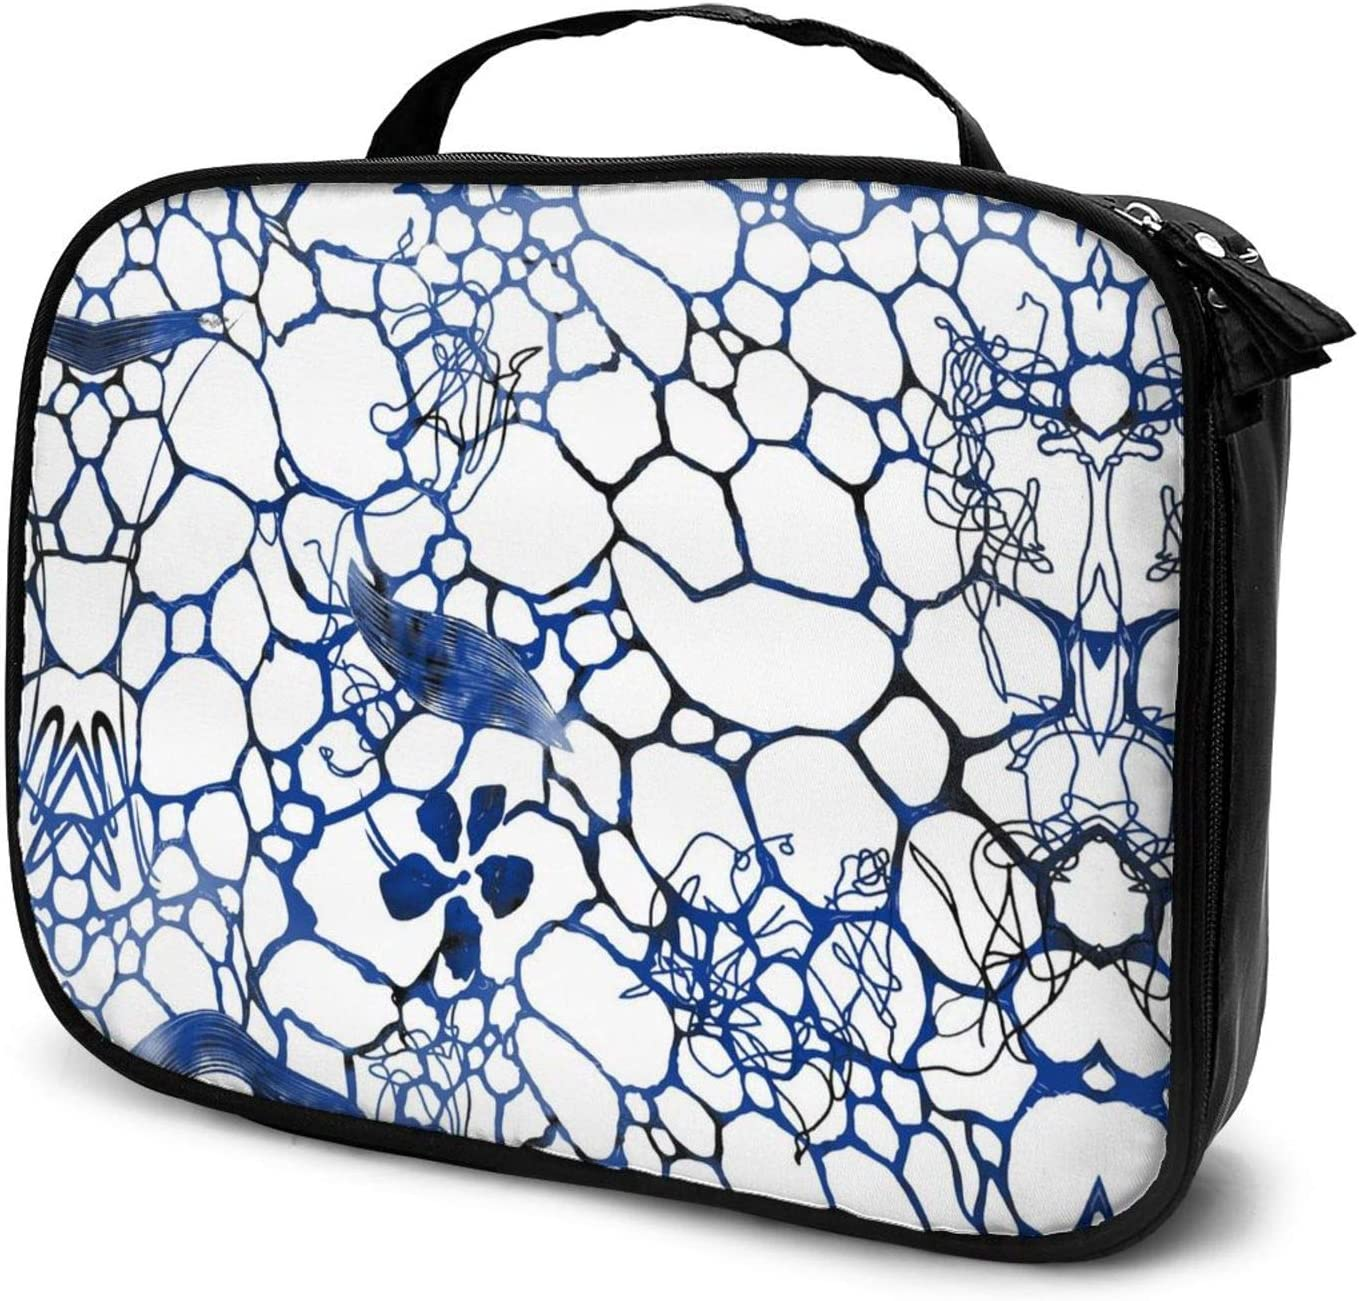 Beautiful Leopard Print Travel Train Case 70% OFF Outlet Ranking integrated 1st place Cosmetic Makeup